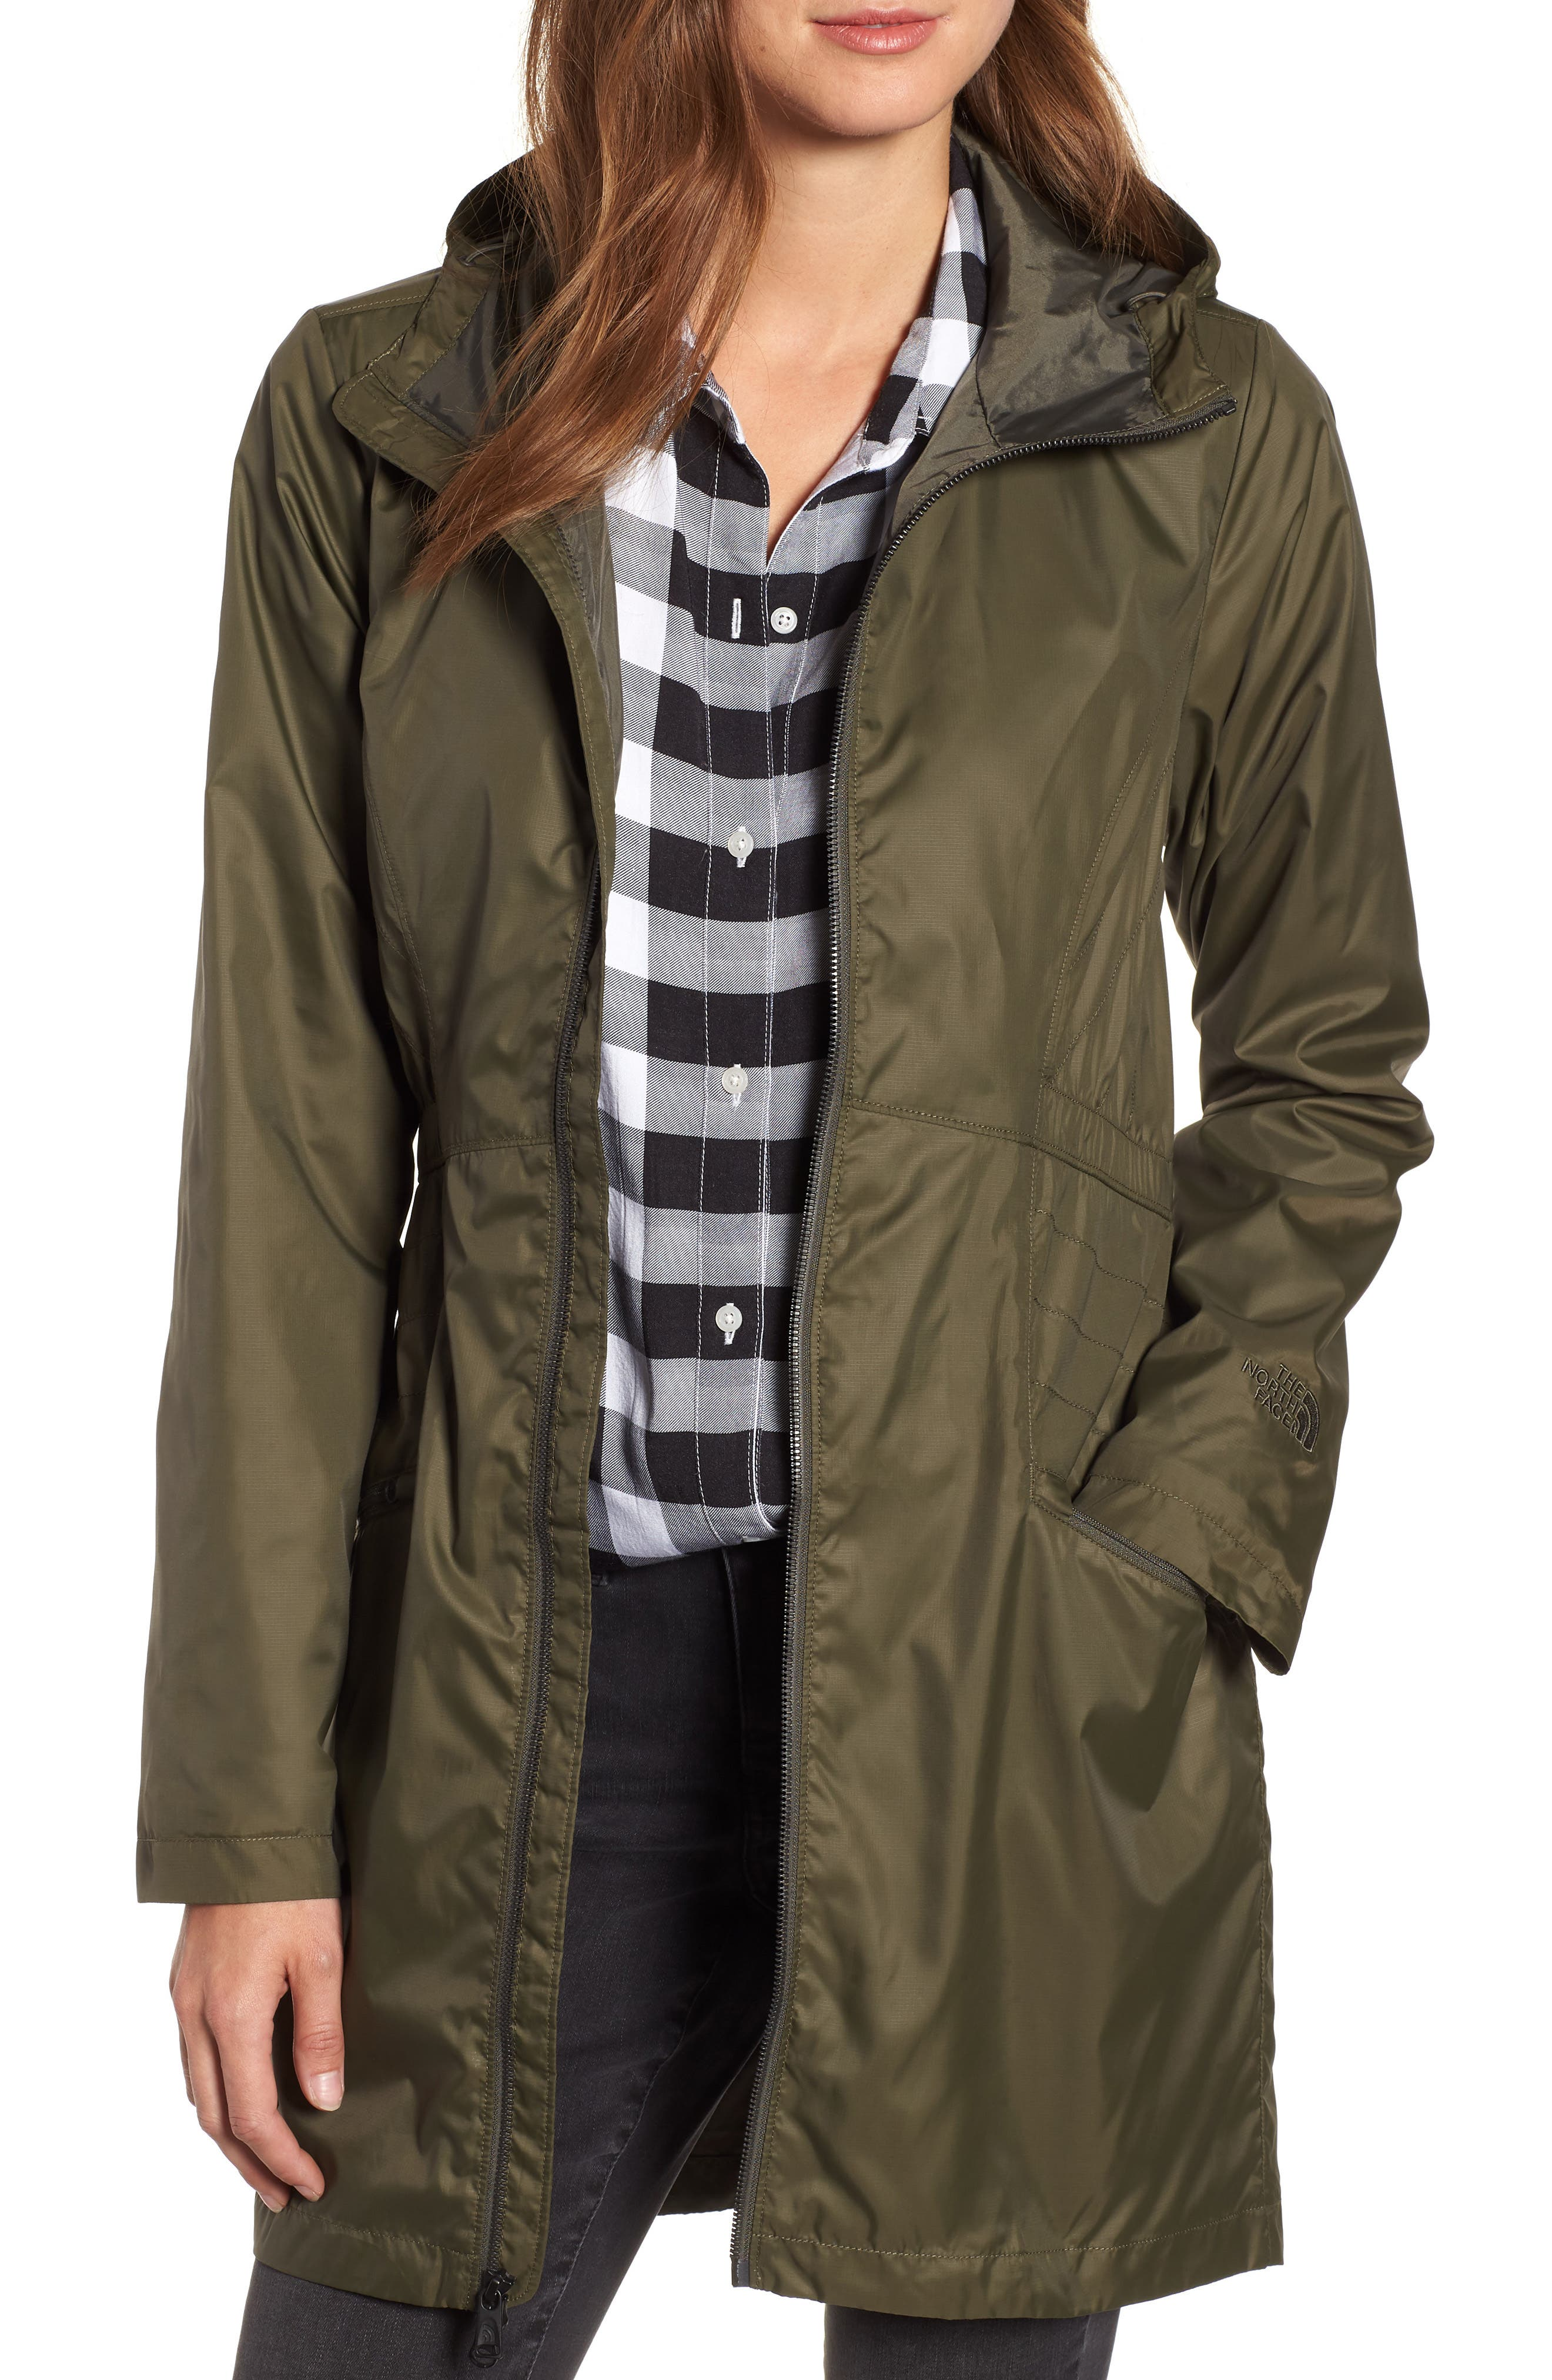 Rissy 2 Wind Resistant Jacket,                         Main,                         color, NEW TAUPE GREEN